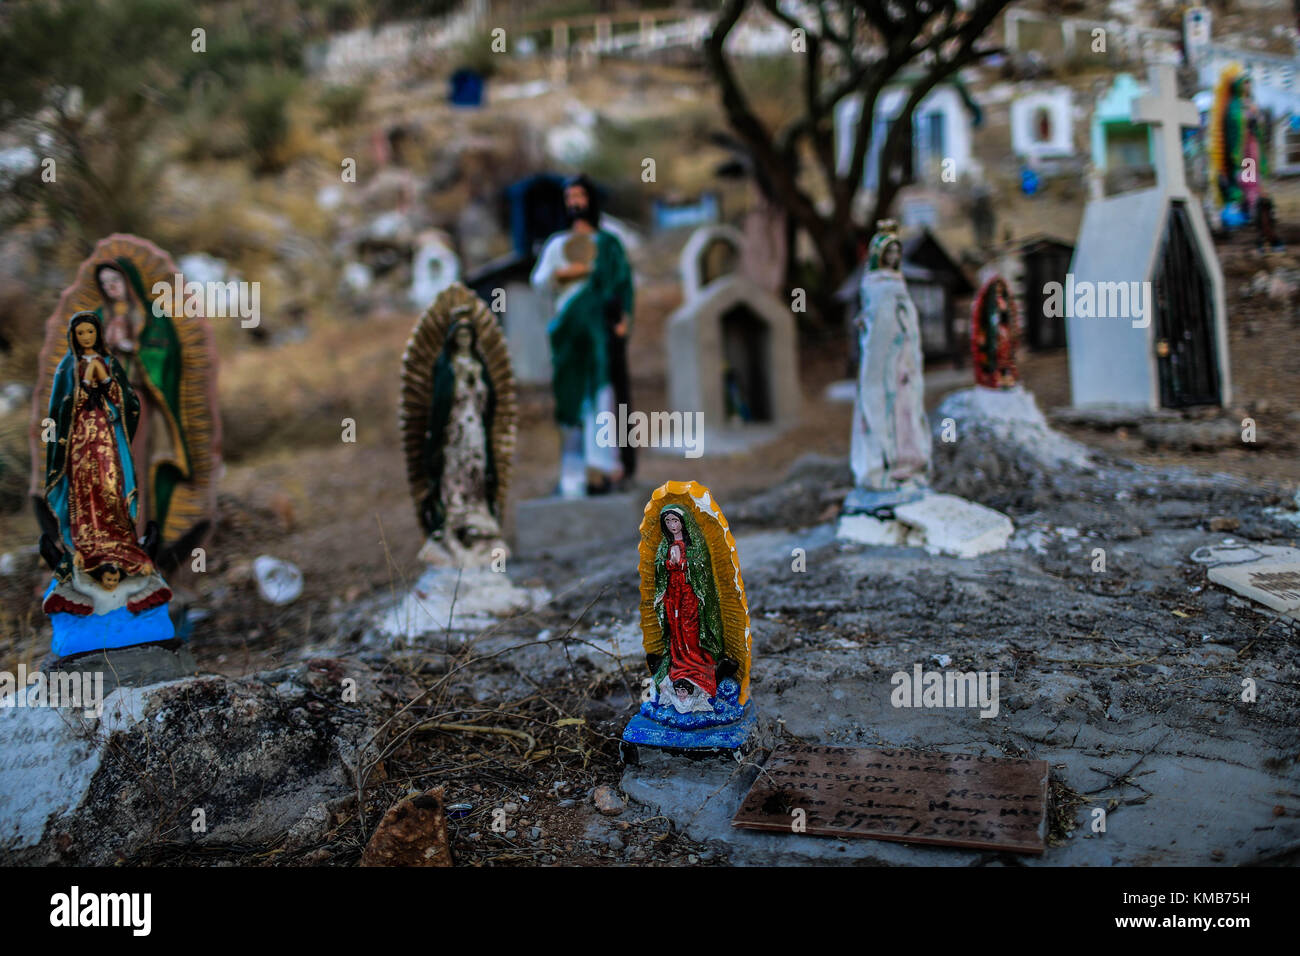 Pilgrimage of believers, faithful and devoted to the Virgin of Guadalupe, mother of Jesus Christ. Tens of thousands Stock Photo